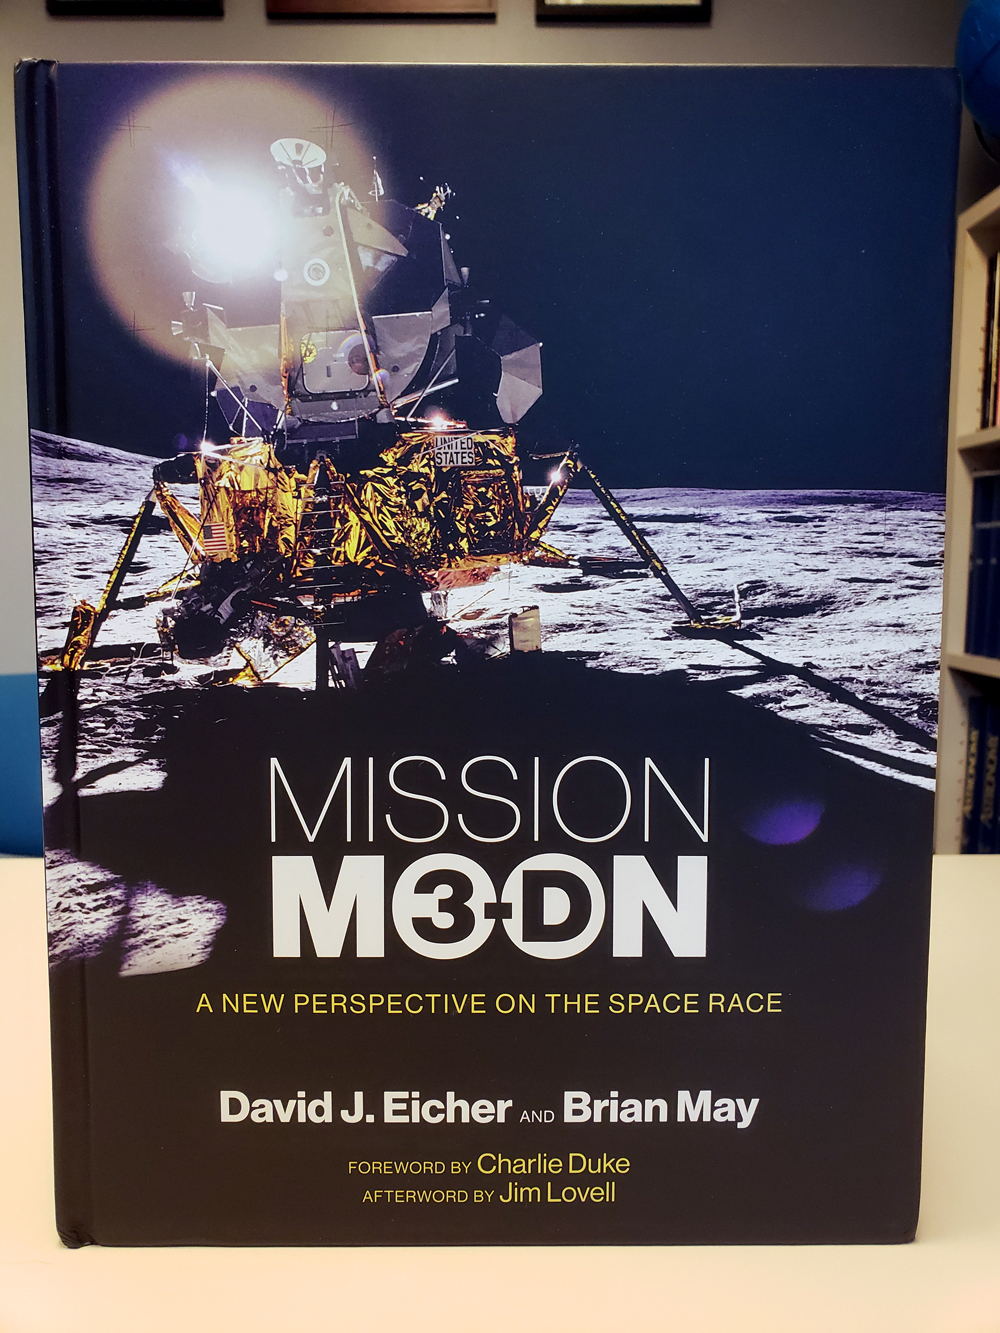 Mission Moon 3 D by David J  Eicher and Brian May arrives  Order now     The new and unique book MISSION MOON 3 D is hitting the shelves to warm the  hearts of space buffs